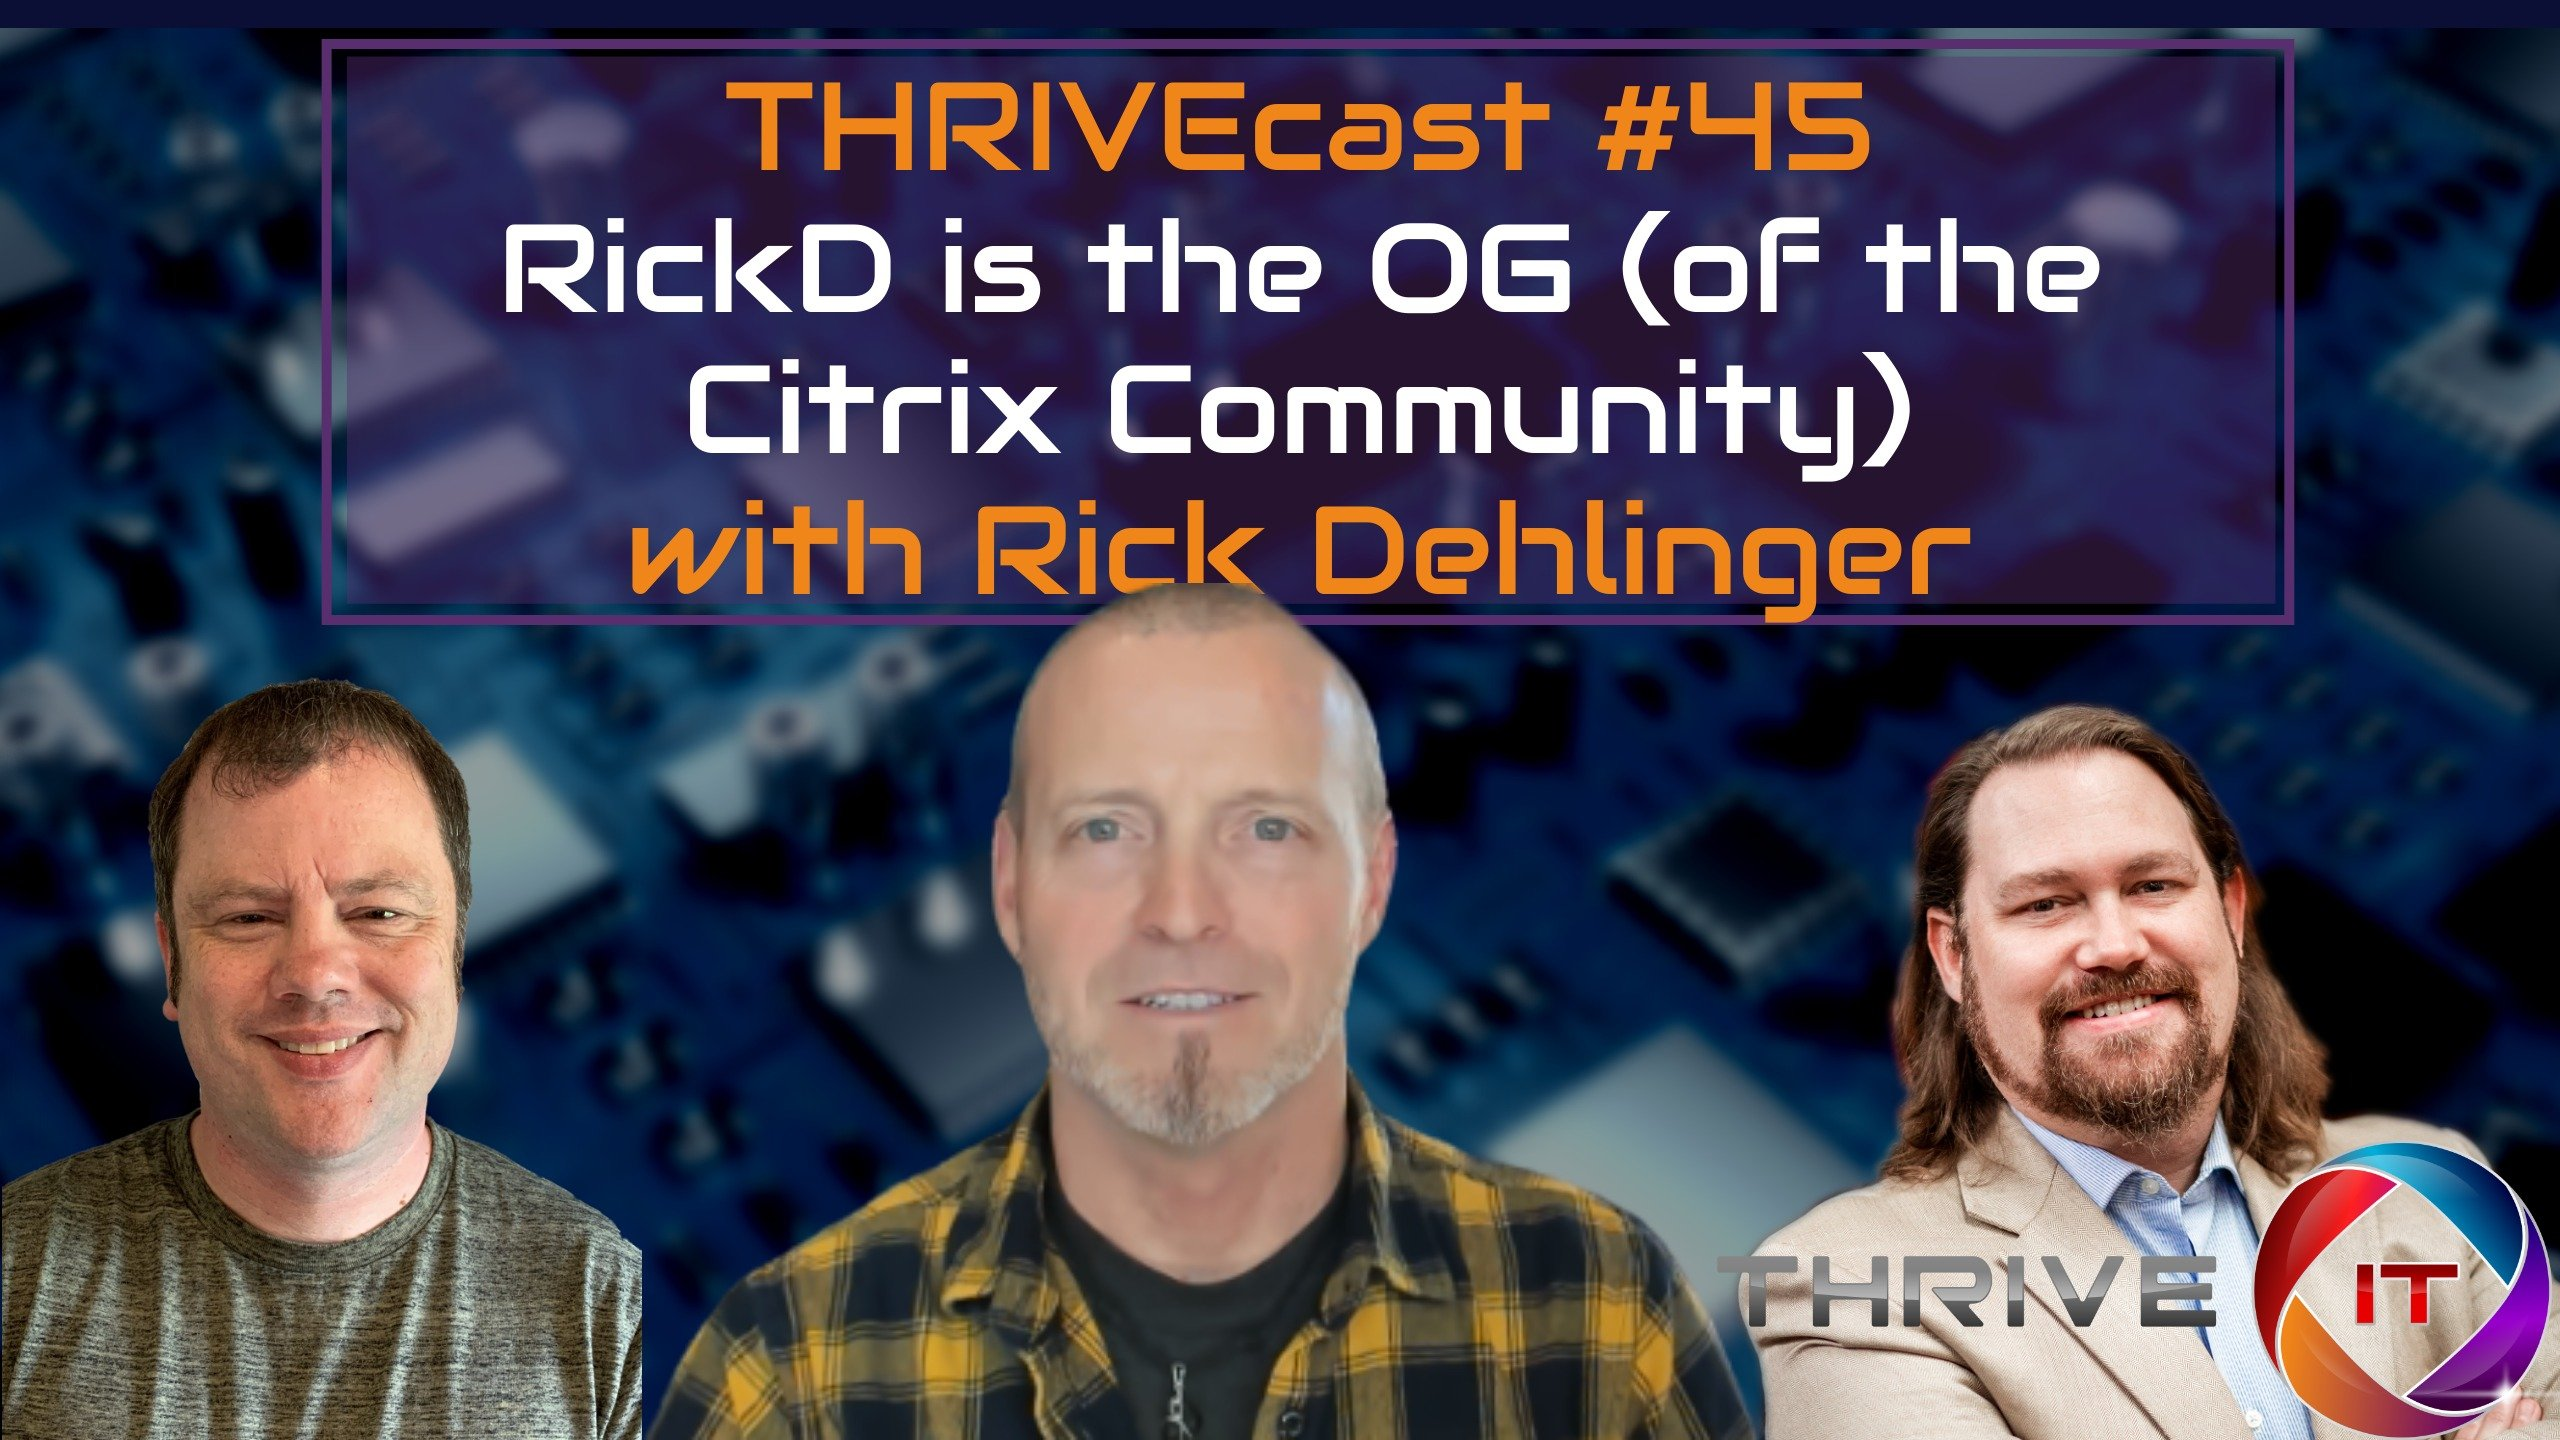 THRIVEcast 45 Banner image